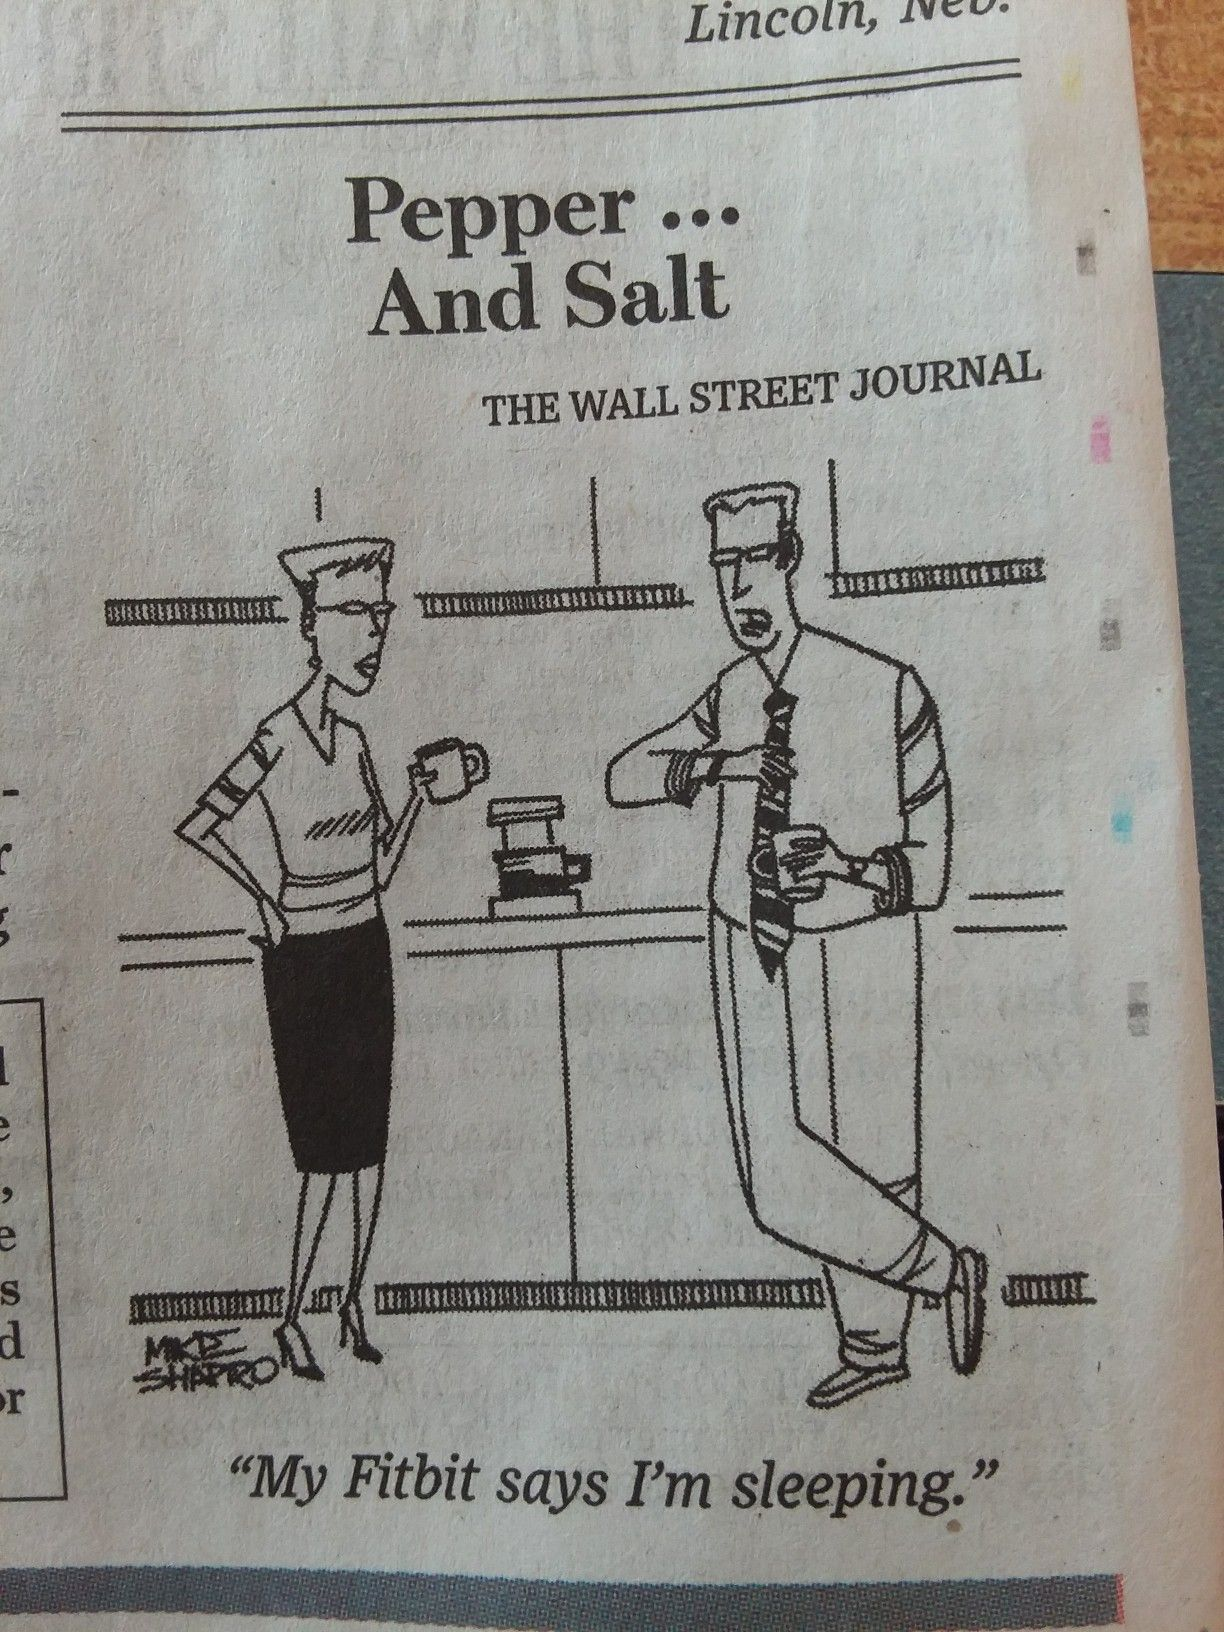 pin by george maguire on pepper and salt wall street on wall street journal login id=78409